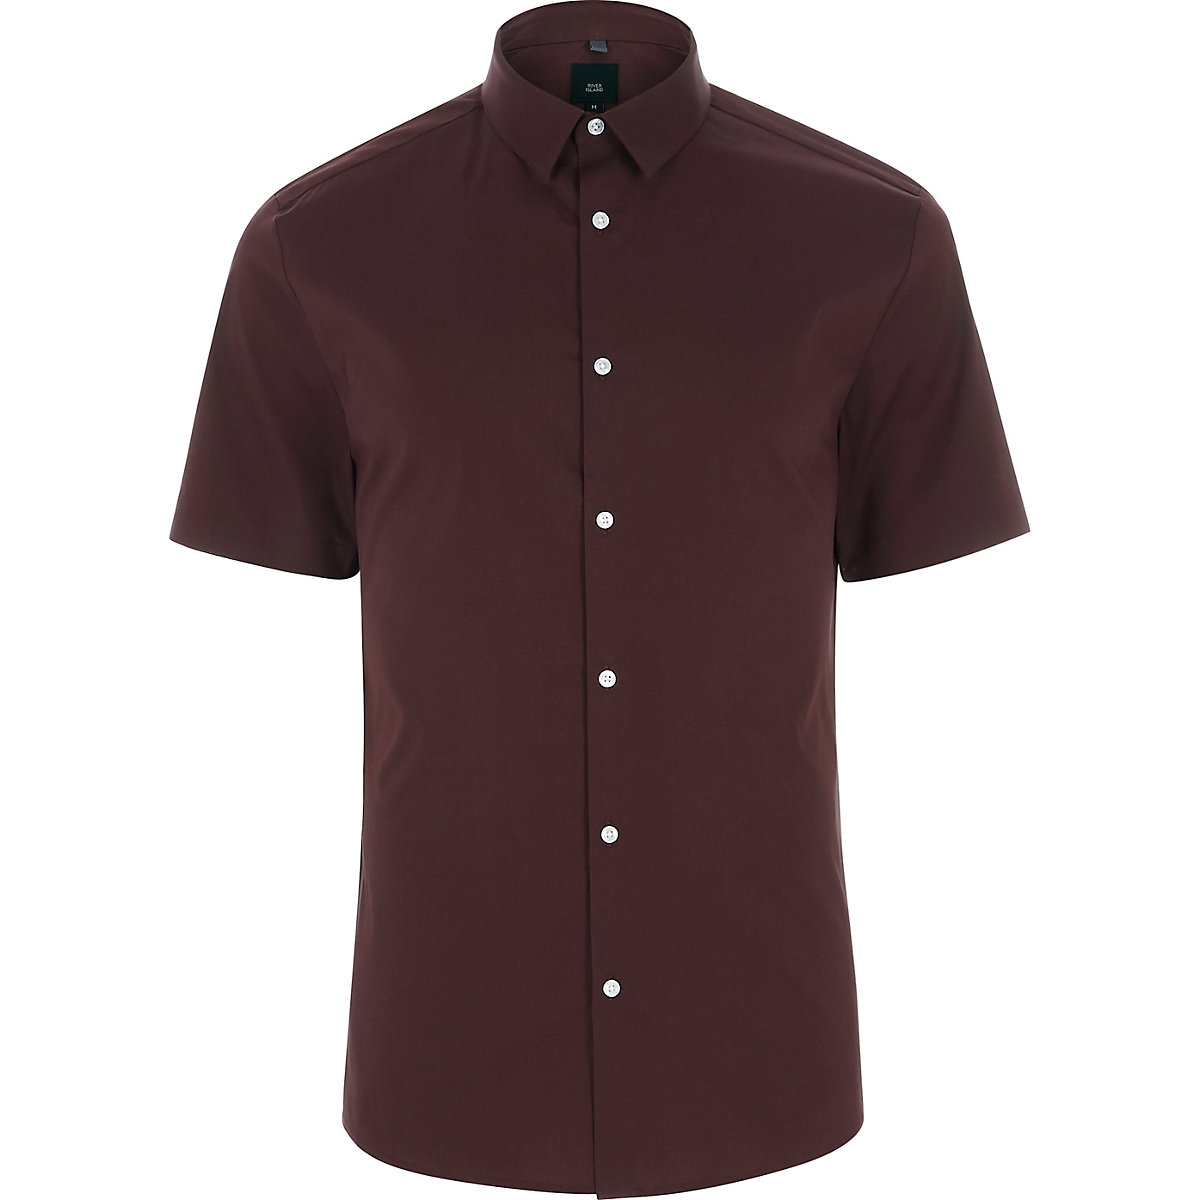 Burgundy short sleeve muscle fit shirt